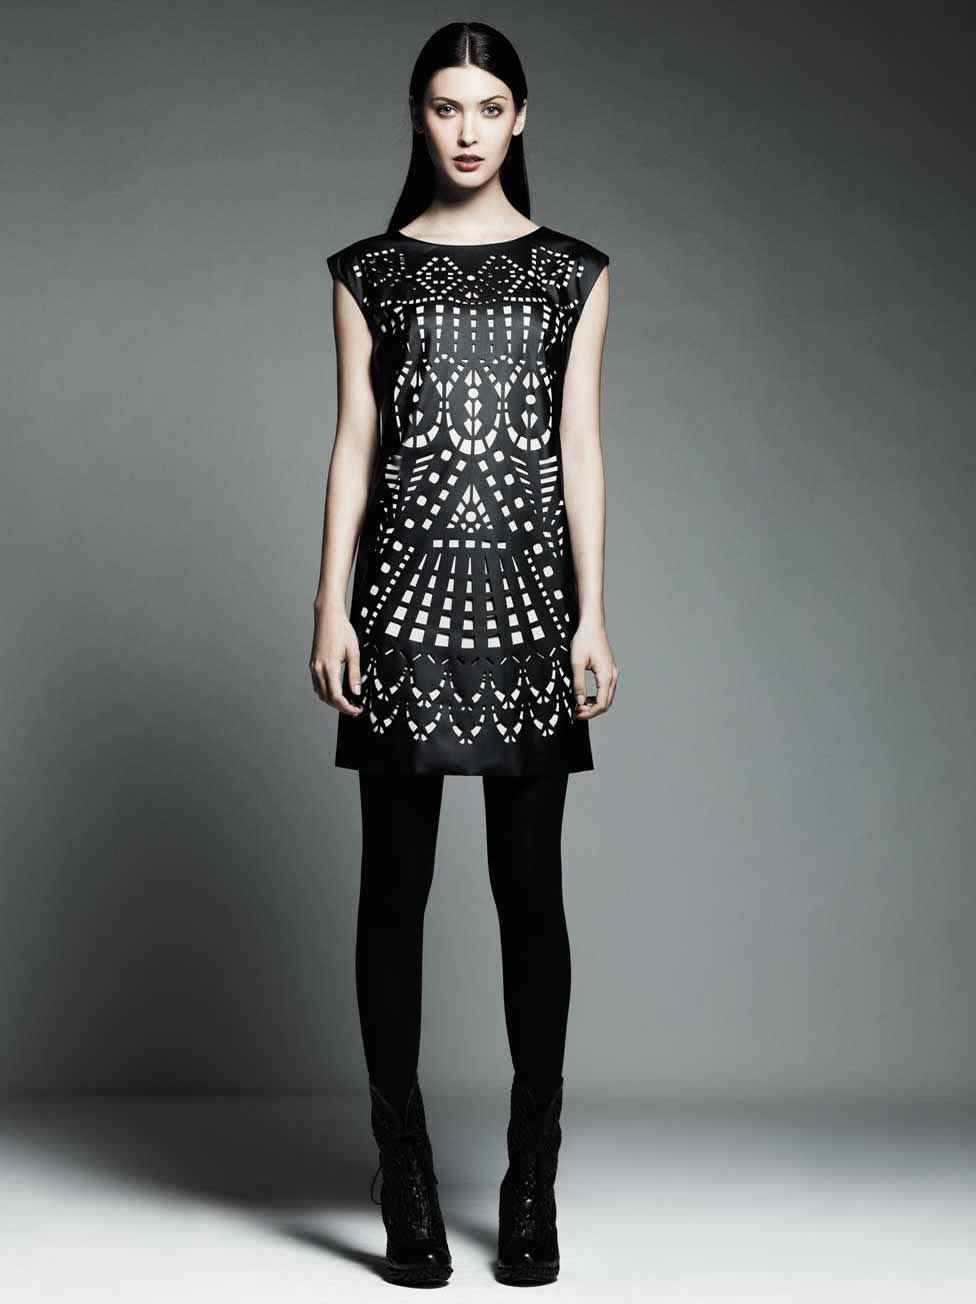 Catherine Malandrino for DesigNation Laser-Cut Shift Dress Price:$88